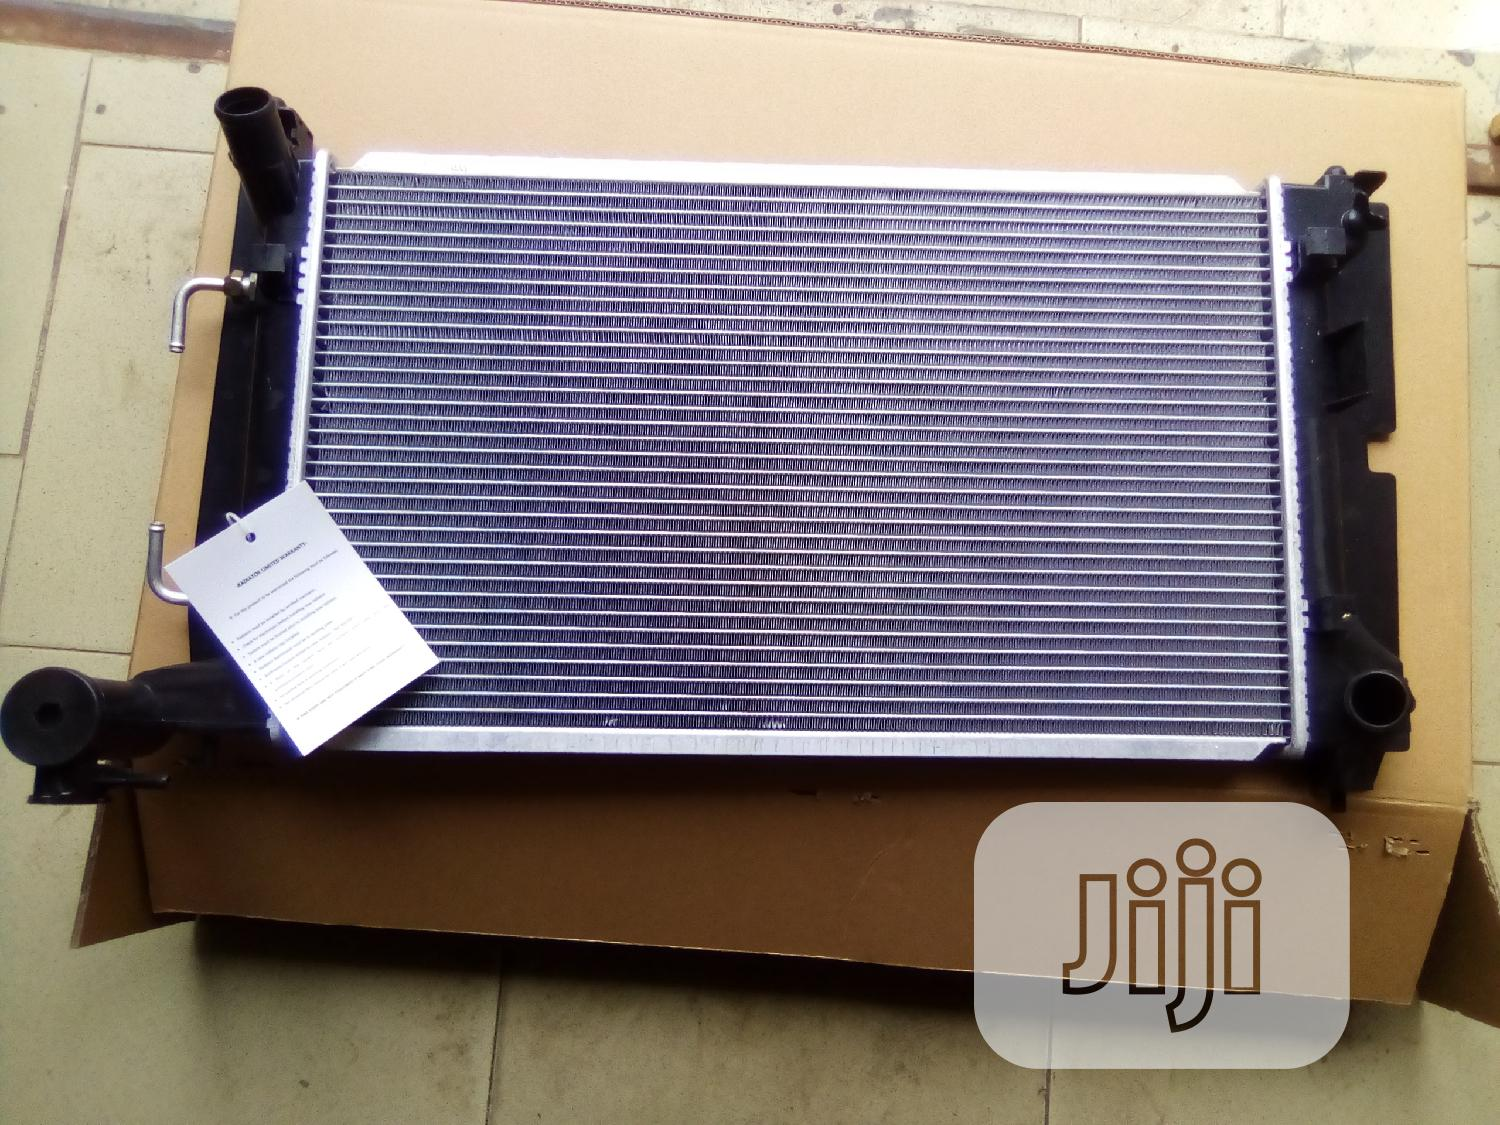 Auto Cooling Radiator For Corolla 2005 Model